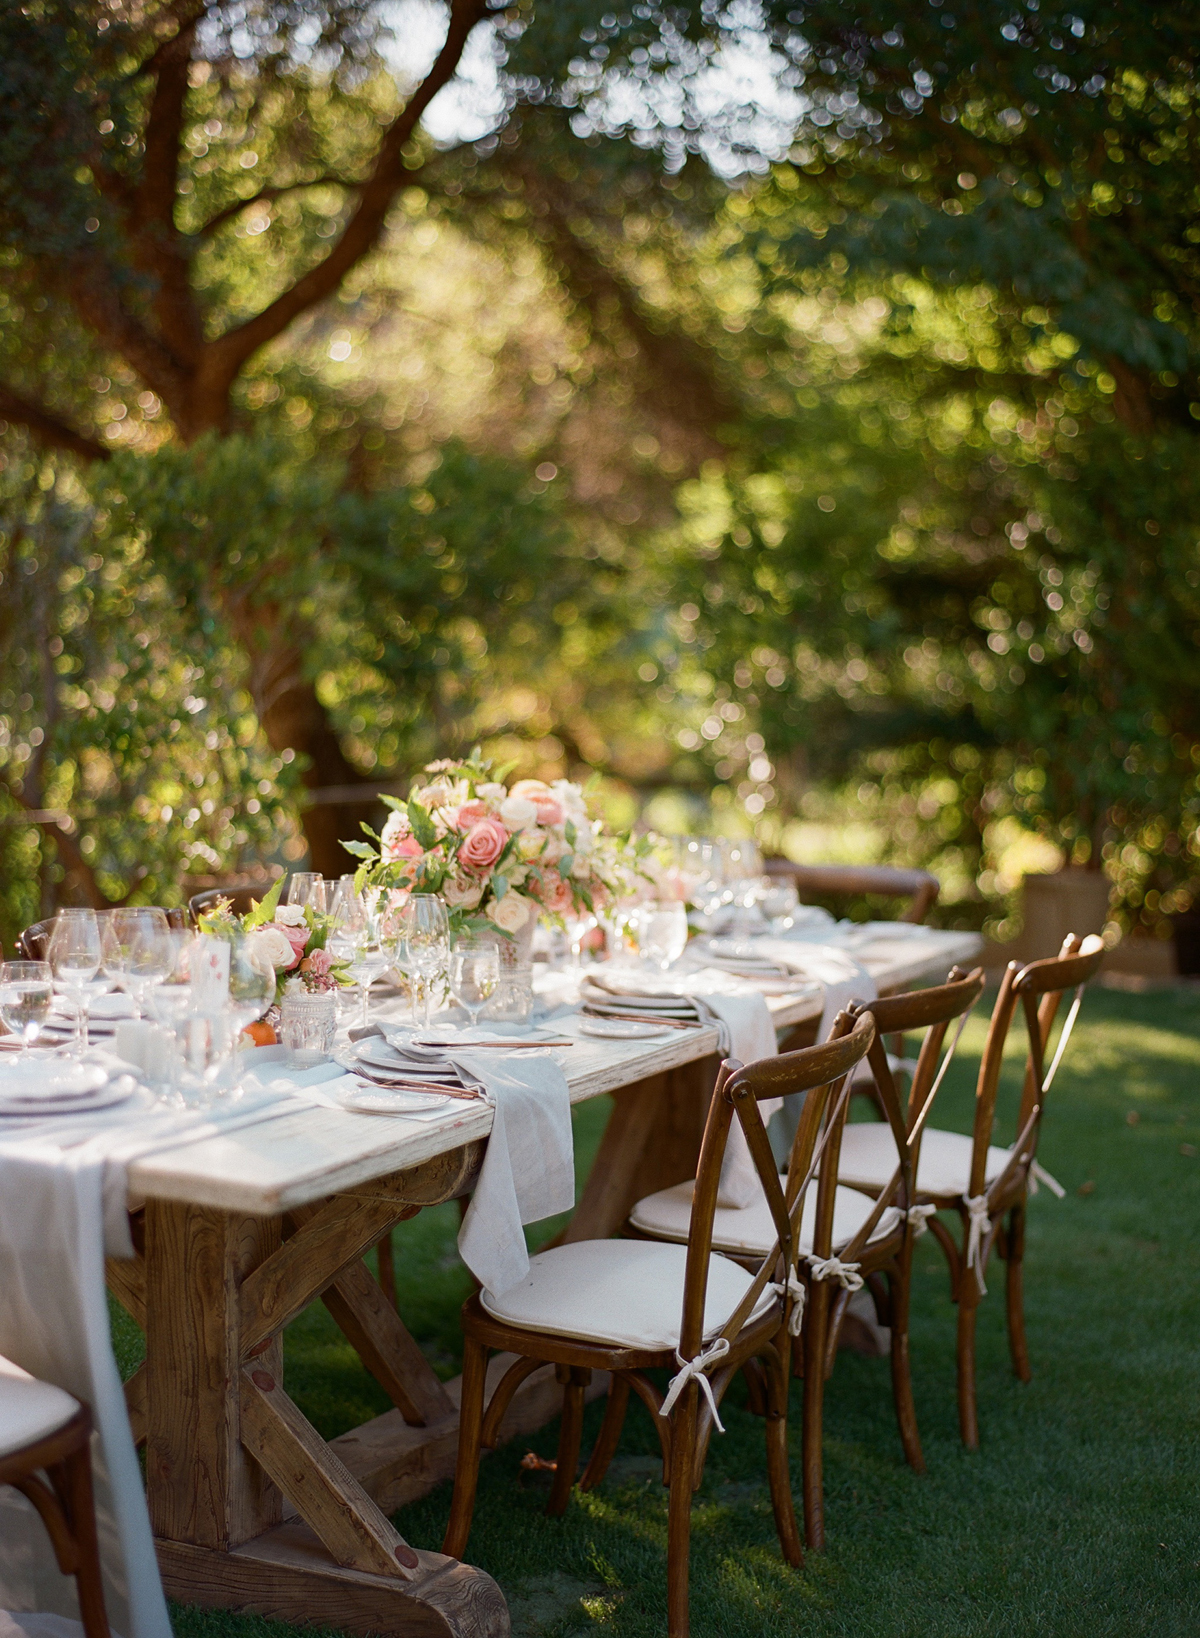 Photography by Christina McNeill.   When I see this photo it's hard to fathom that it was over 105 degrees at Meadowood that day.  To combat the heat, we had to continuously mist the flowers.  Only at the last minute were we able to set the table.  I know it wasn't what Hailey the planner wanted or planned.  But sometimes we have to forego our own plans so that the guest experience and the flowers look their best for the couple and their many guests.   I knew that it was too hot to set the arrangements in direct heat when it was so incredibly blistering hot that even a garland of lemon leaf was starting to get crisp and browning.  Sometimes with experience,  it's a judgment that you make because you want the flowers to look their best when guests walk into the reception space instead of doing it for the editorial shot.